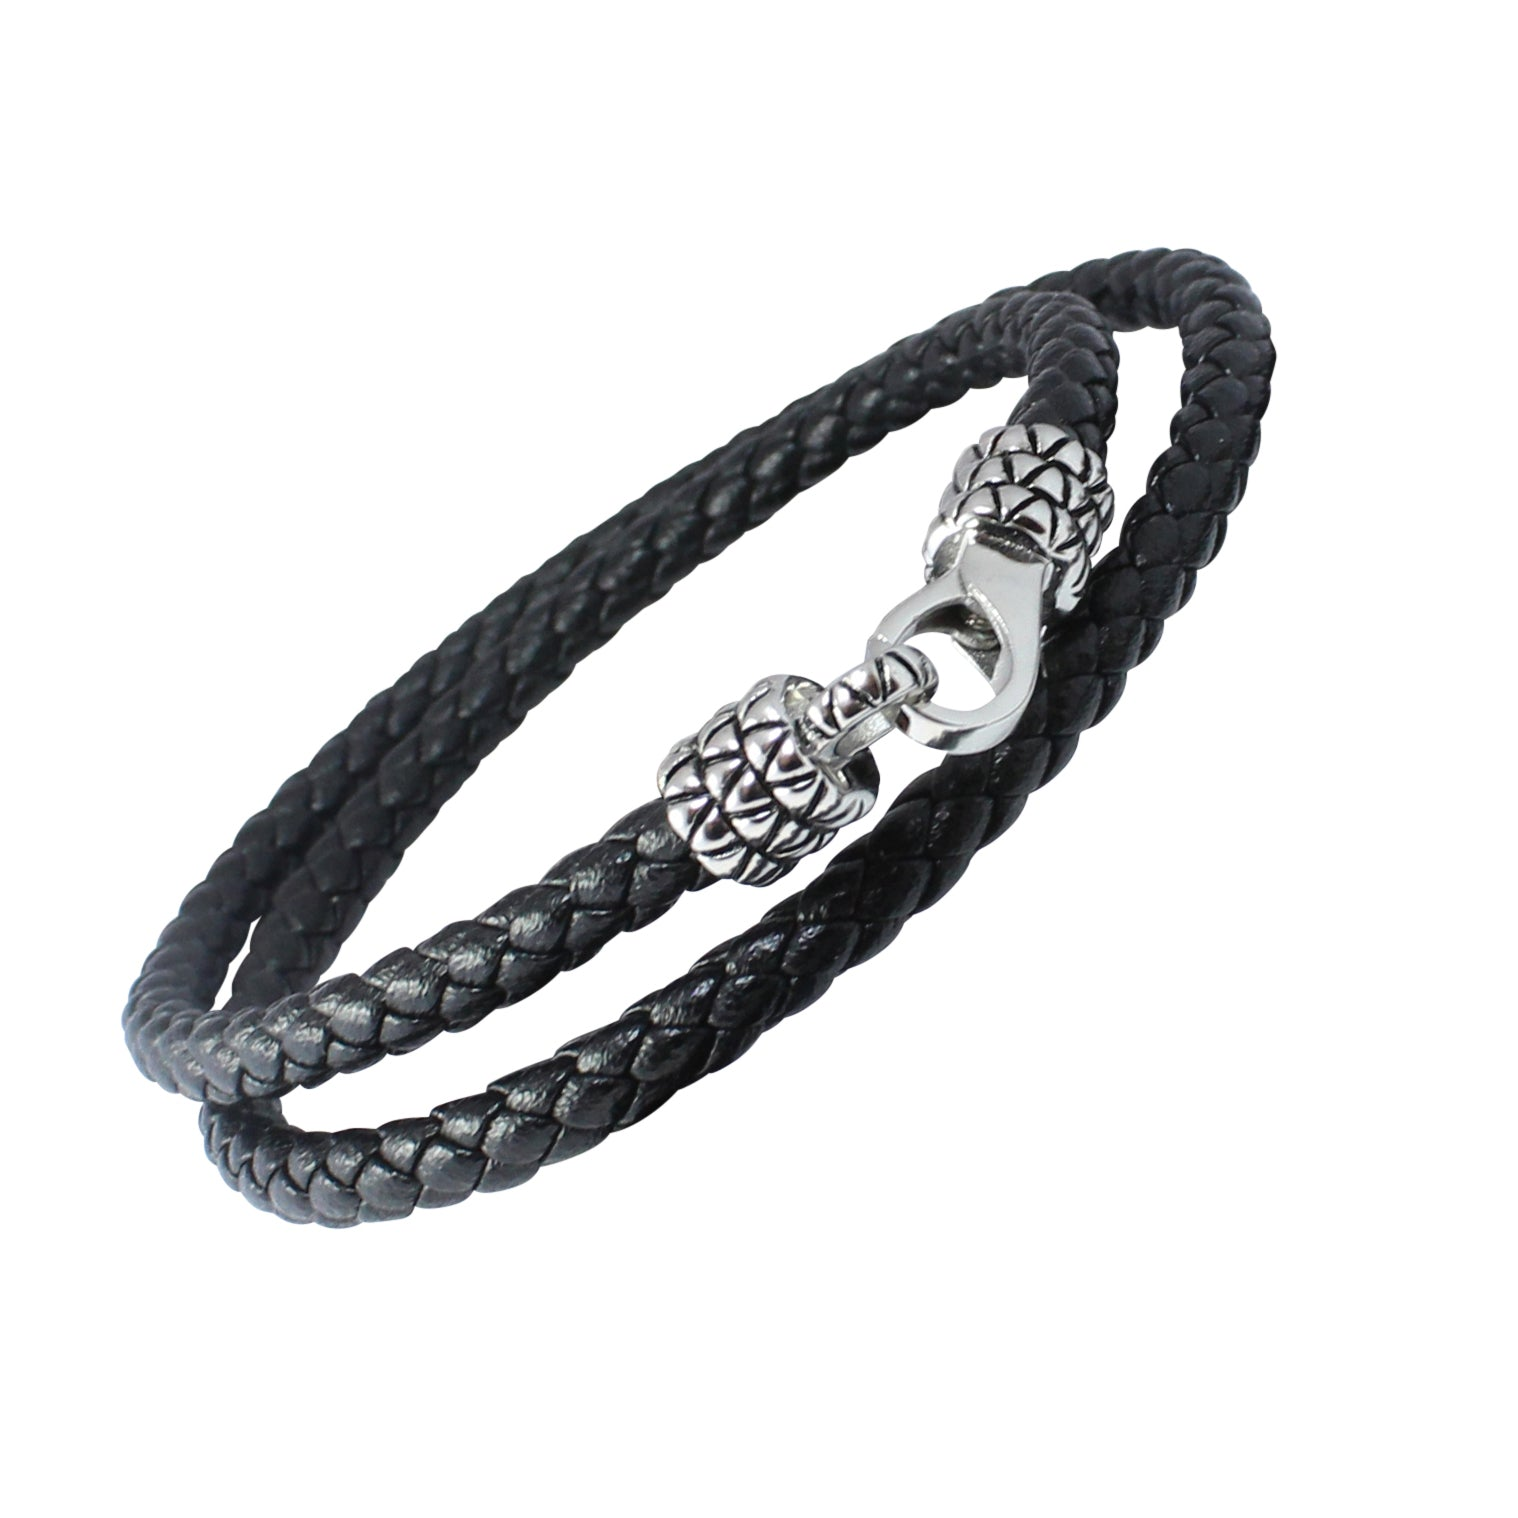 DRAGON SKIN - Braided Black Wrap Bracelet in Leather with Stainless Steel. 17